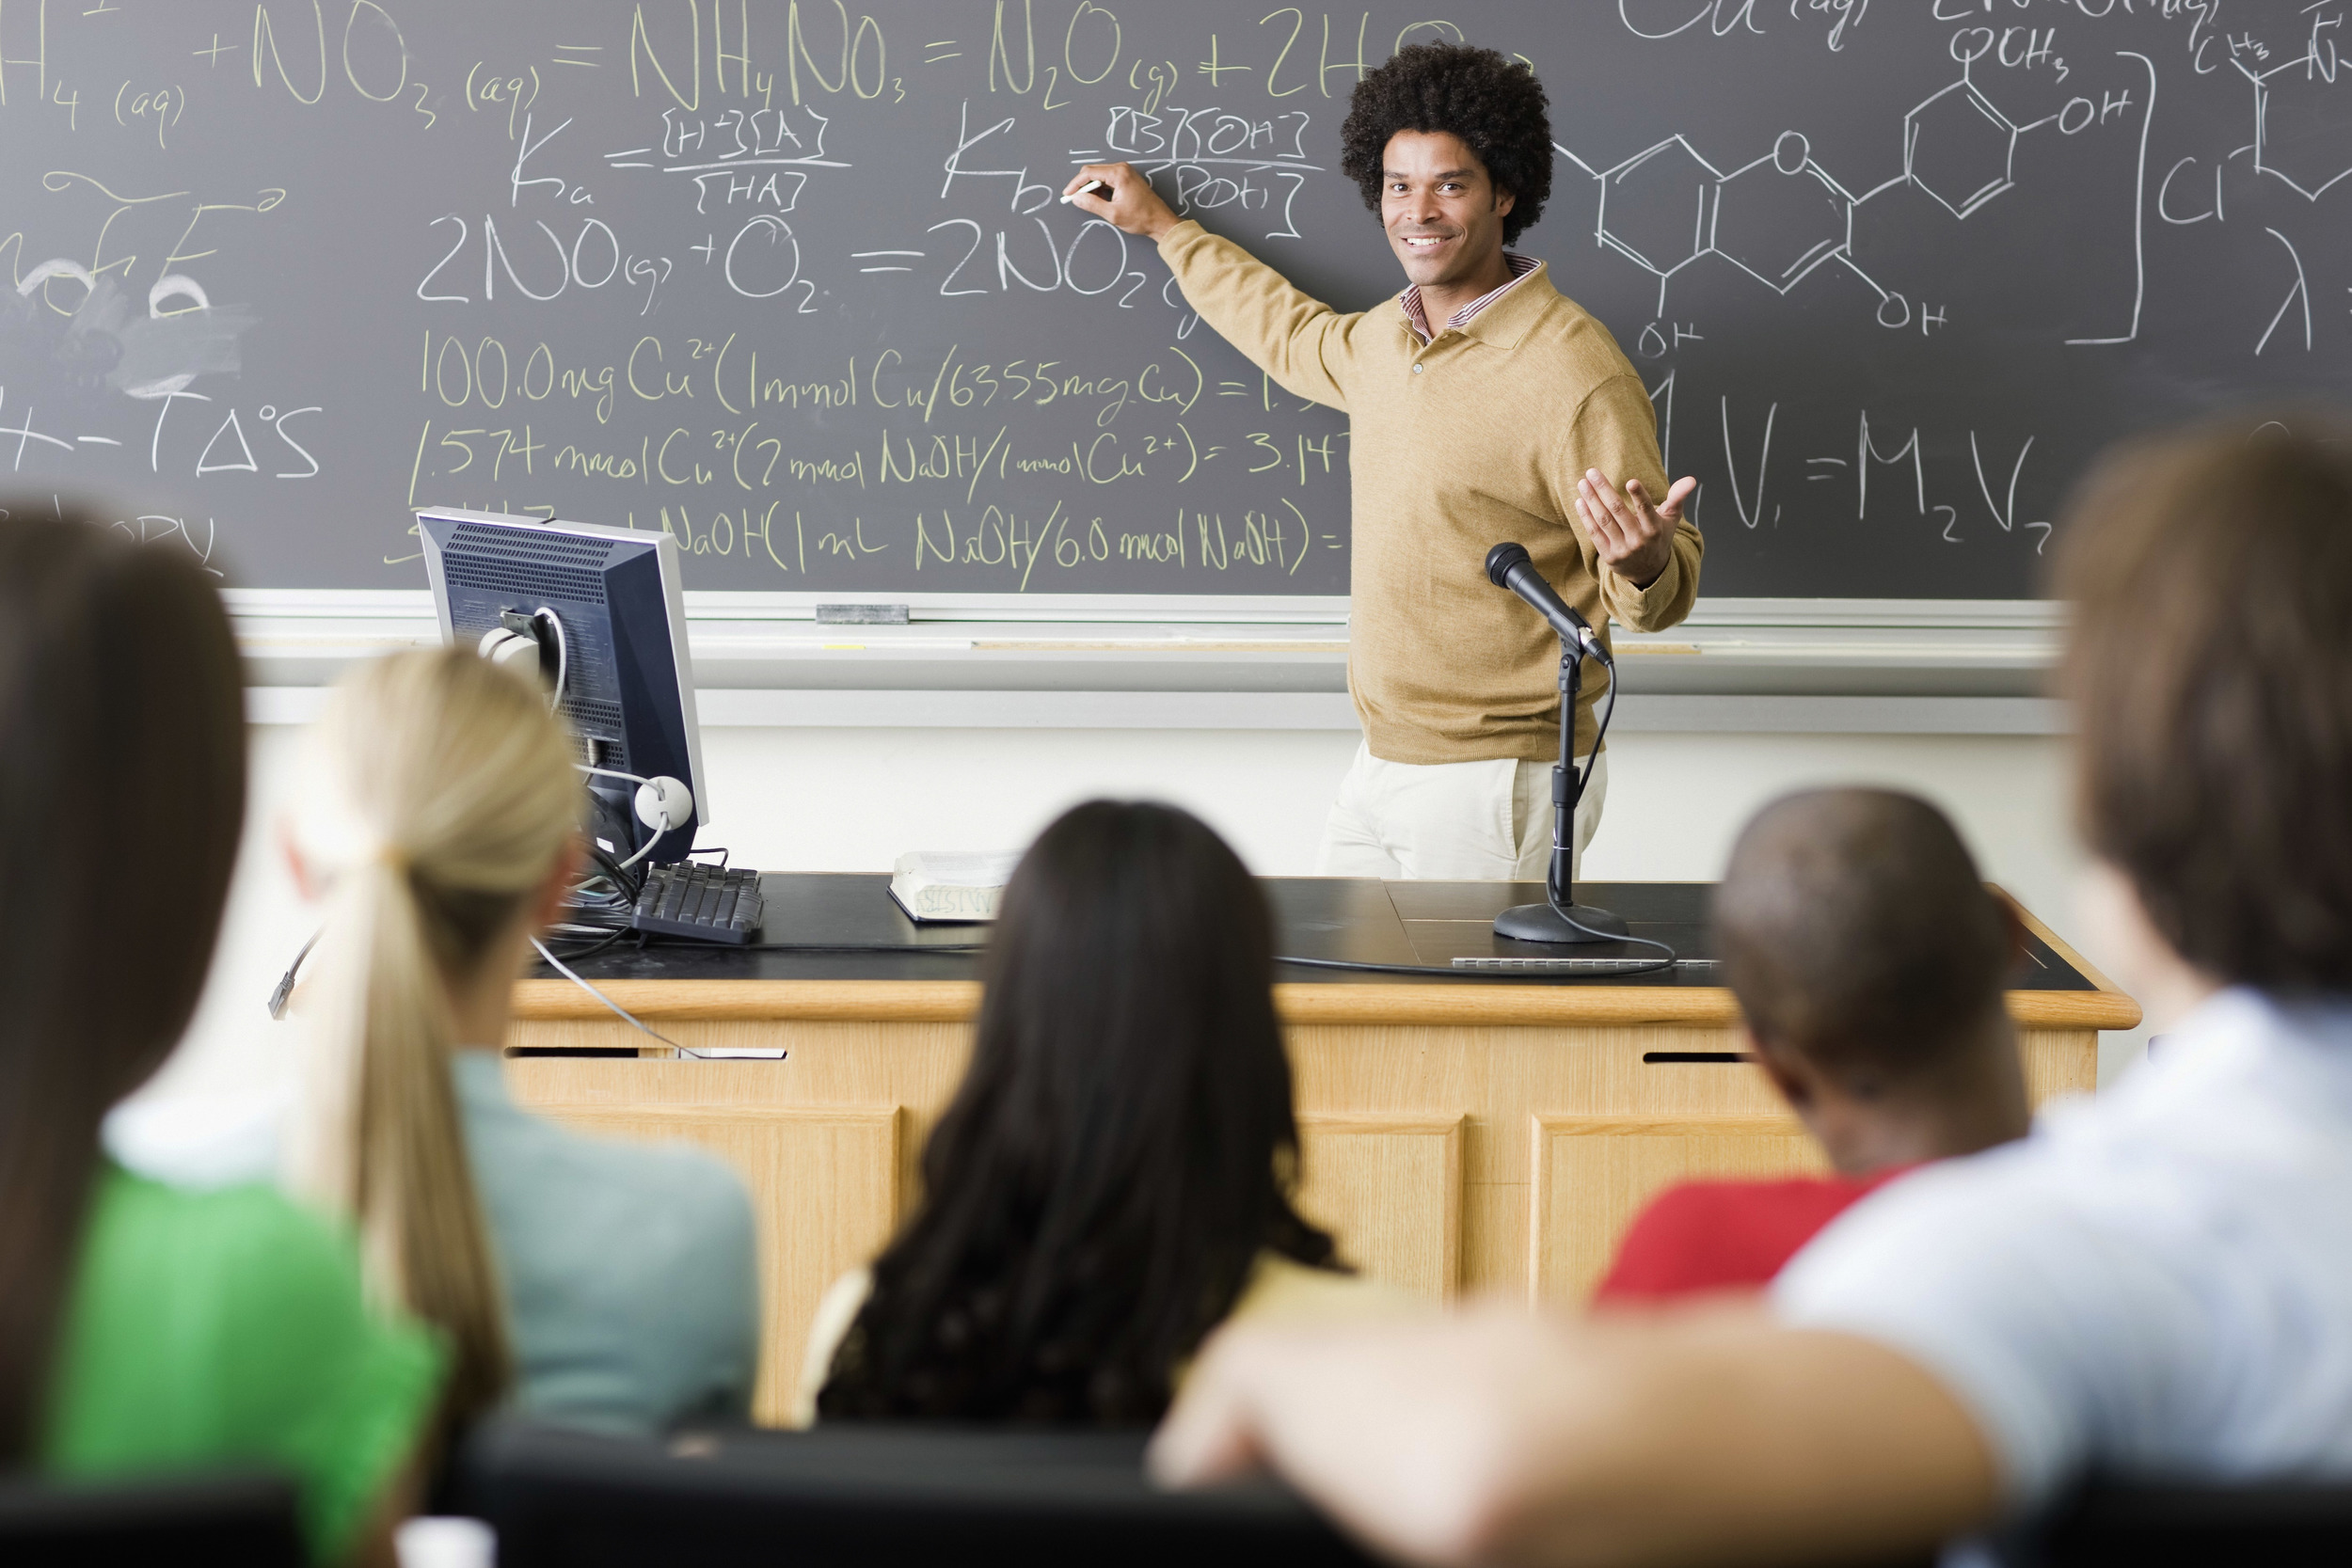 The student as the customer, in and out of the classroom